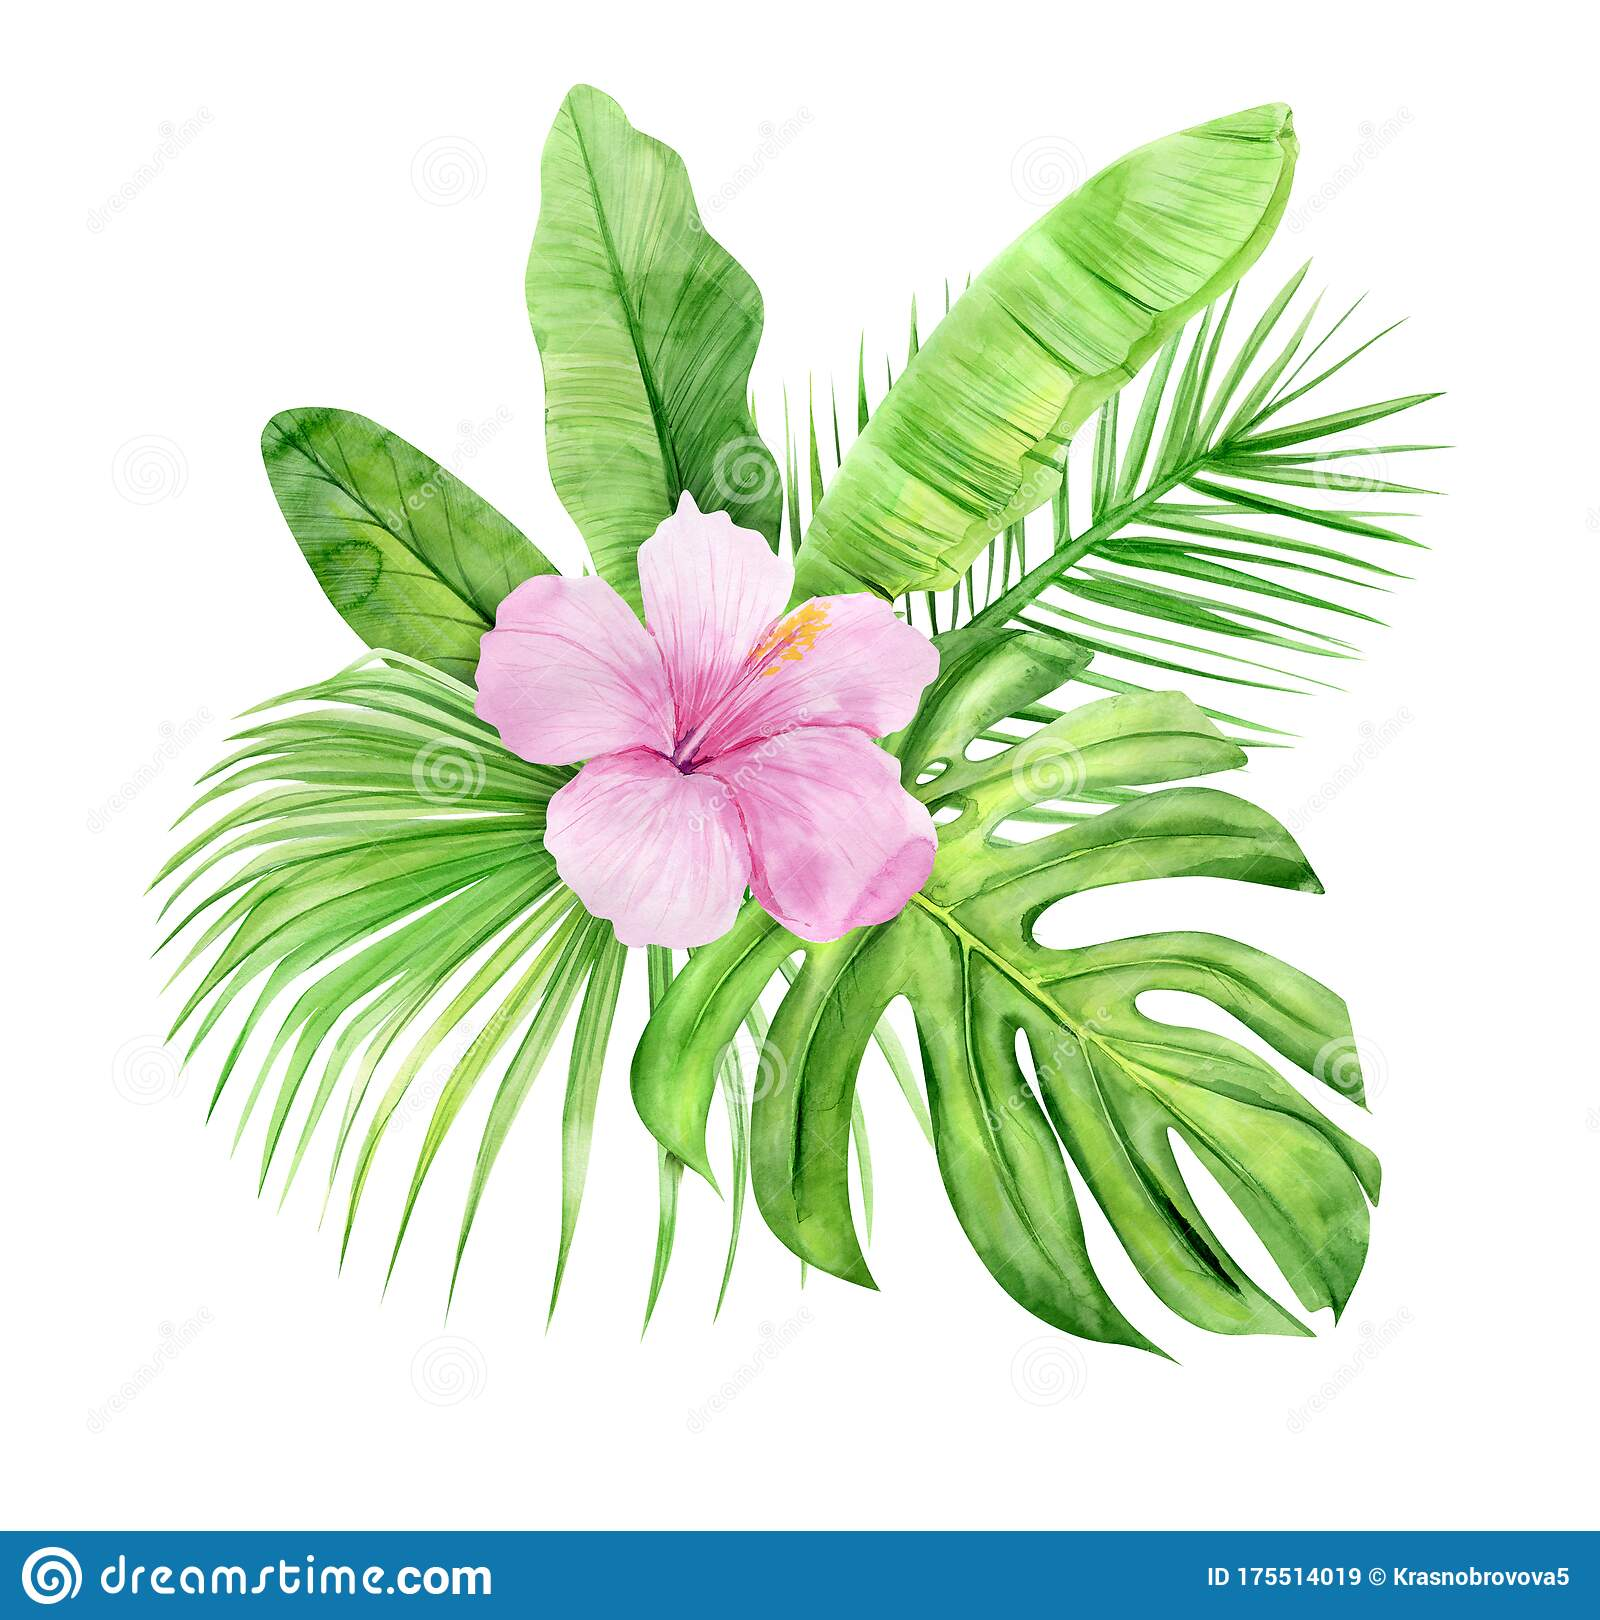 Green Palm Leaves And Flowers Bouquet Tropical Plant Hand Painted Watercolor Illustration Isolated On White Background Stock Illustration Illustration Of Leaf Green 175514019 Urijk printed tropical leaves flower beach towel round microfiber beach towels for living room tropical plant leaves tapestry wall hanging polyester bohemia flowers print tapestry beach. dreamstime com